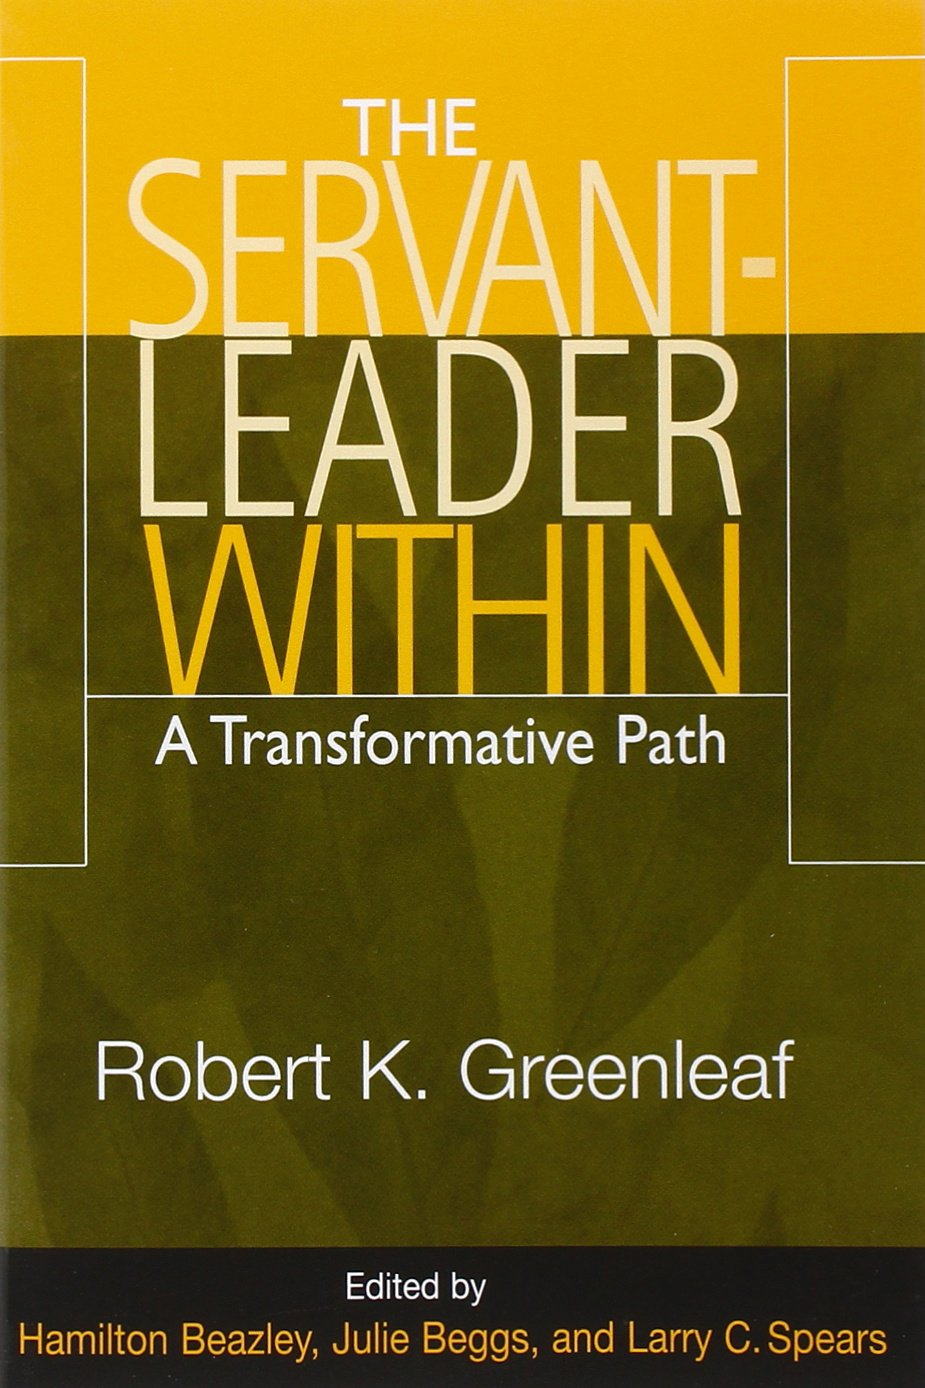 com robert k greenleaf books biography blog the servant leader in a transformative path